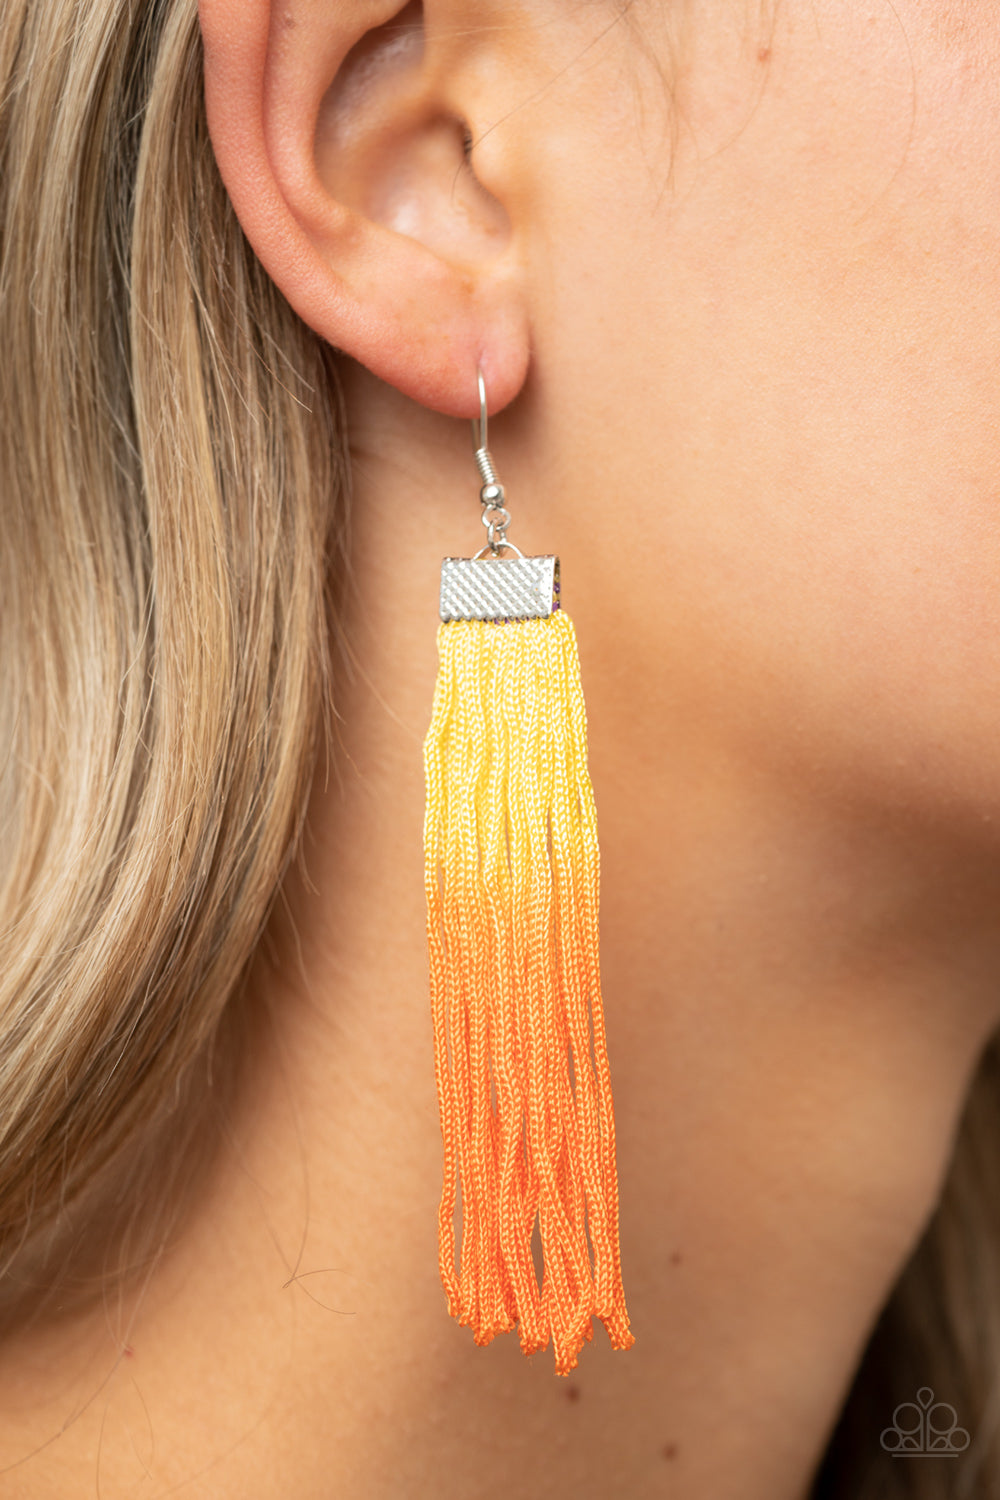 Paparazzi Accessories Dual Immersion - Yellow Earrings